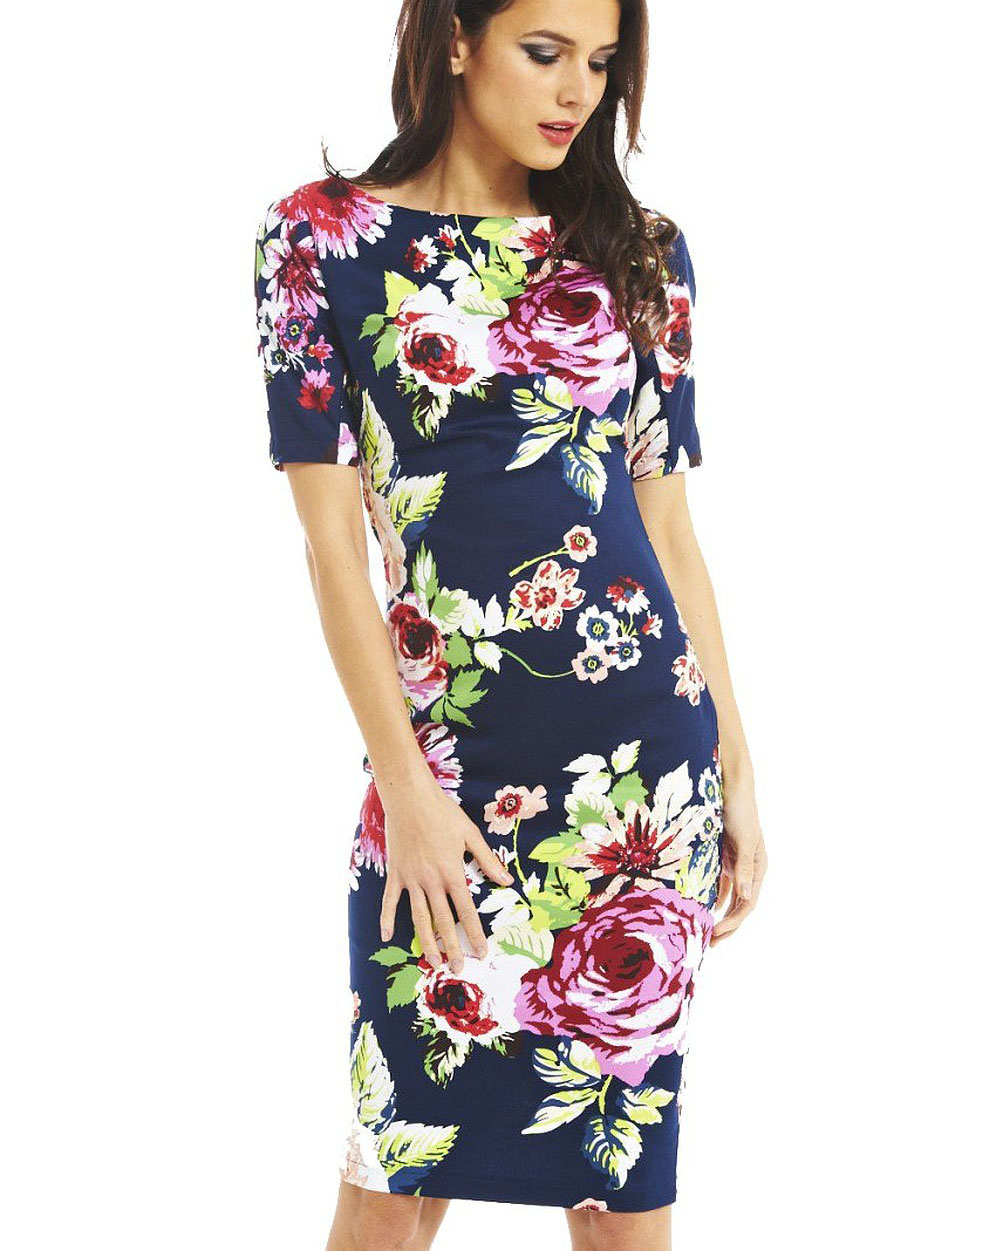 Women Dress Summer Elegant Floral Print Wear To Work Business Casual Party Vestidos Be106